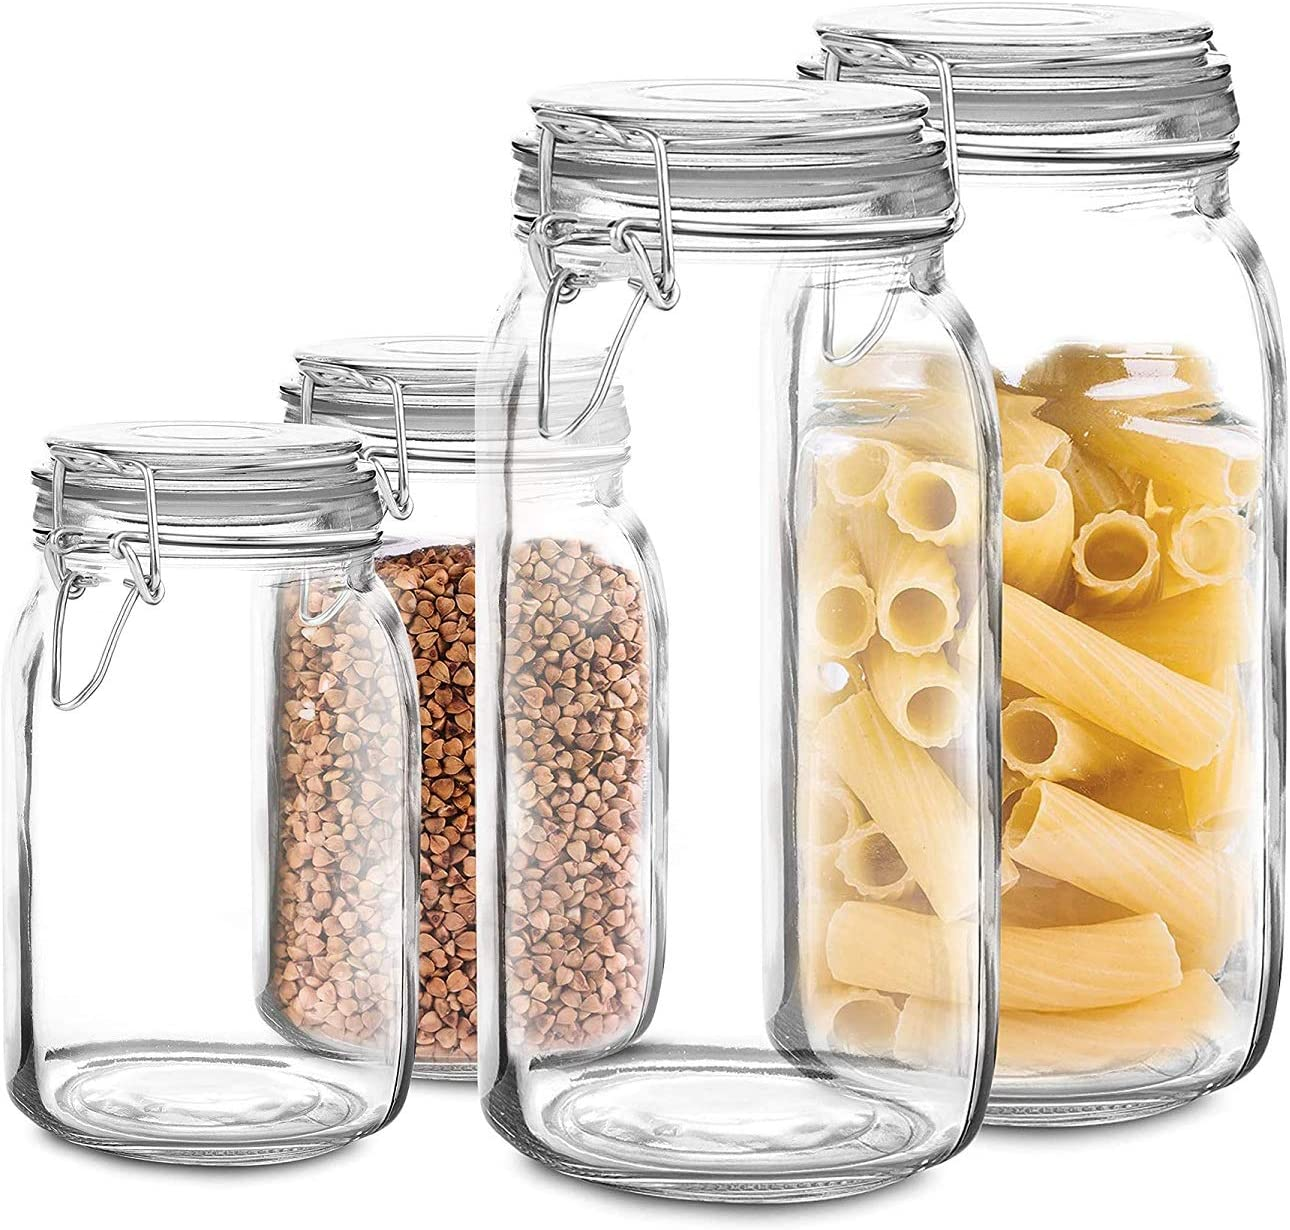 Set of 4 Glass mason Jar with Lid 2 Jars 34 Oz, 2 Jars 68 Oz | Airtight Glass Storage Container for Food, Flour, Pasta, Coffee, Candy, Dog Treats, Snacks & More | Glass Organization Canisters